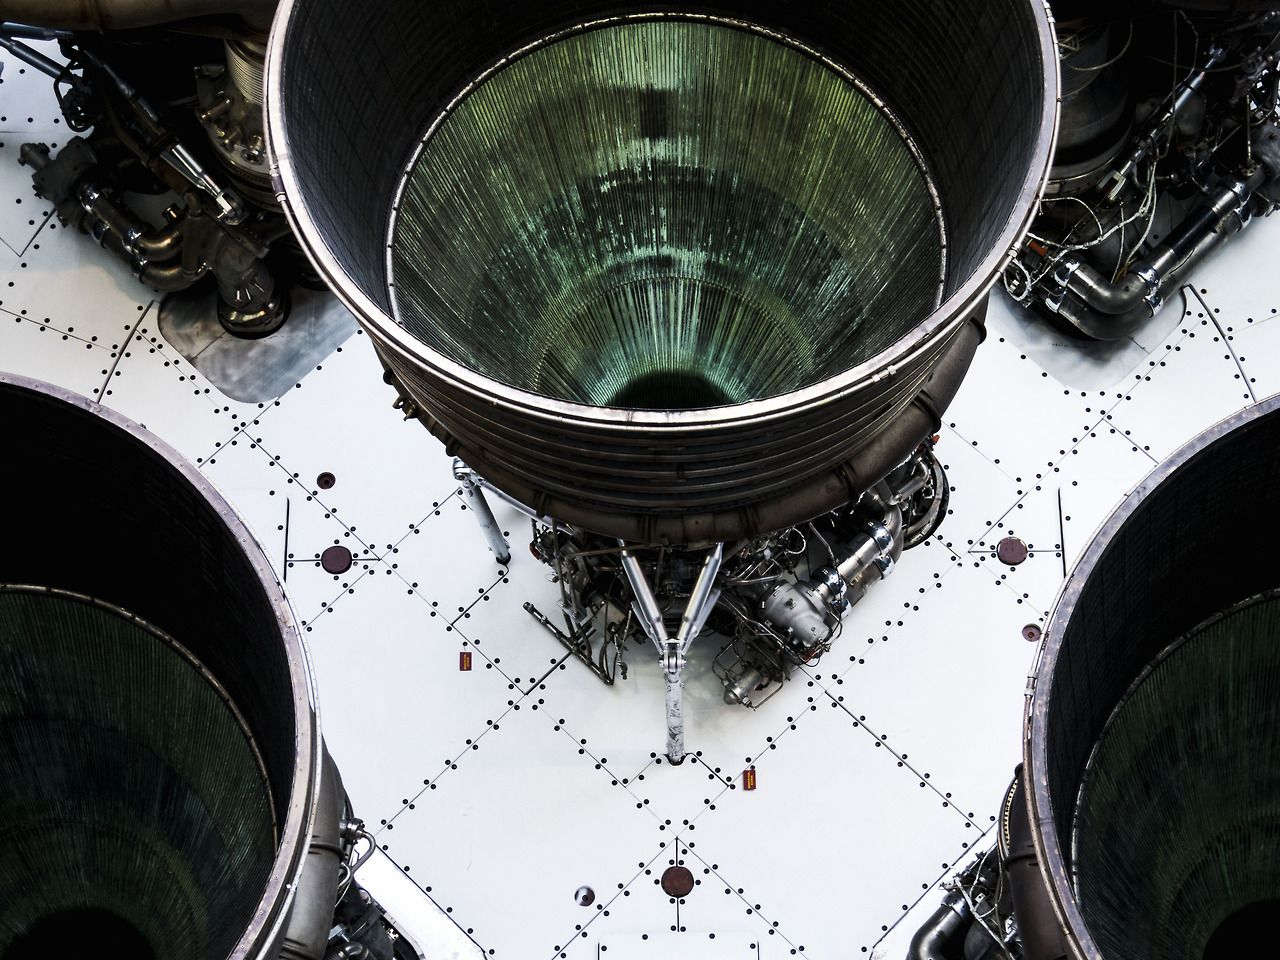 Here We Have The Saturn V Rocket Housed Inside The Apollo Saturn V Center At Kennedy Space Center Near Titusvi Earth S Atmosphere Kennedy Space Center Saturn